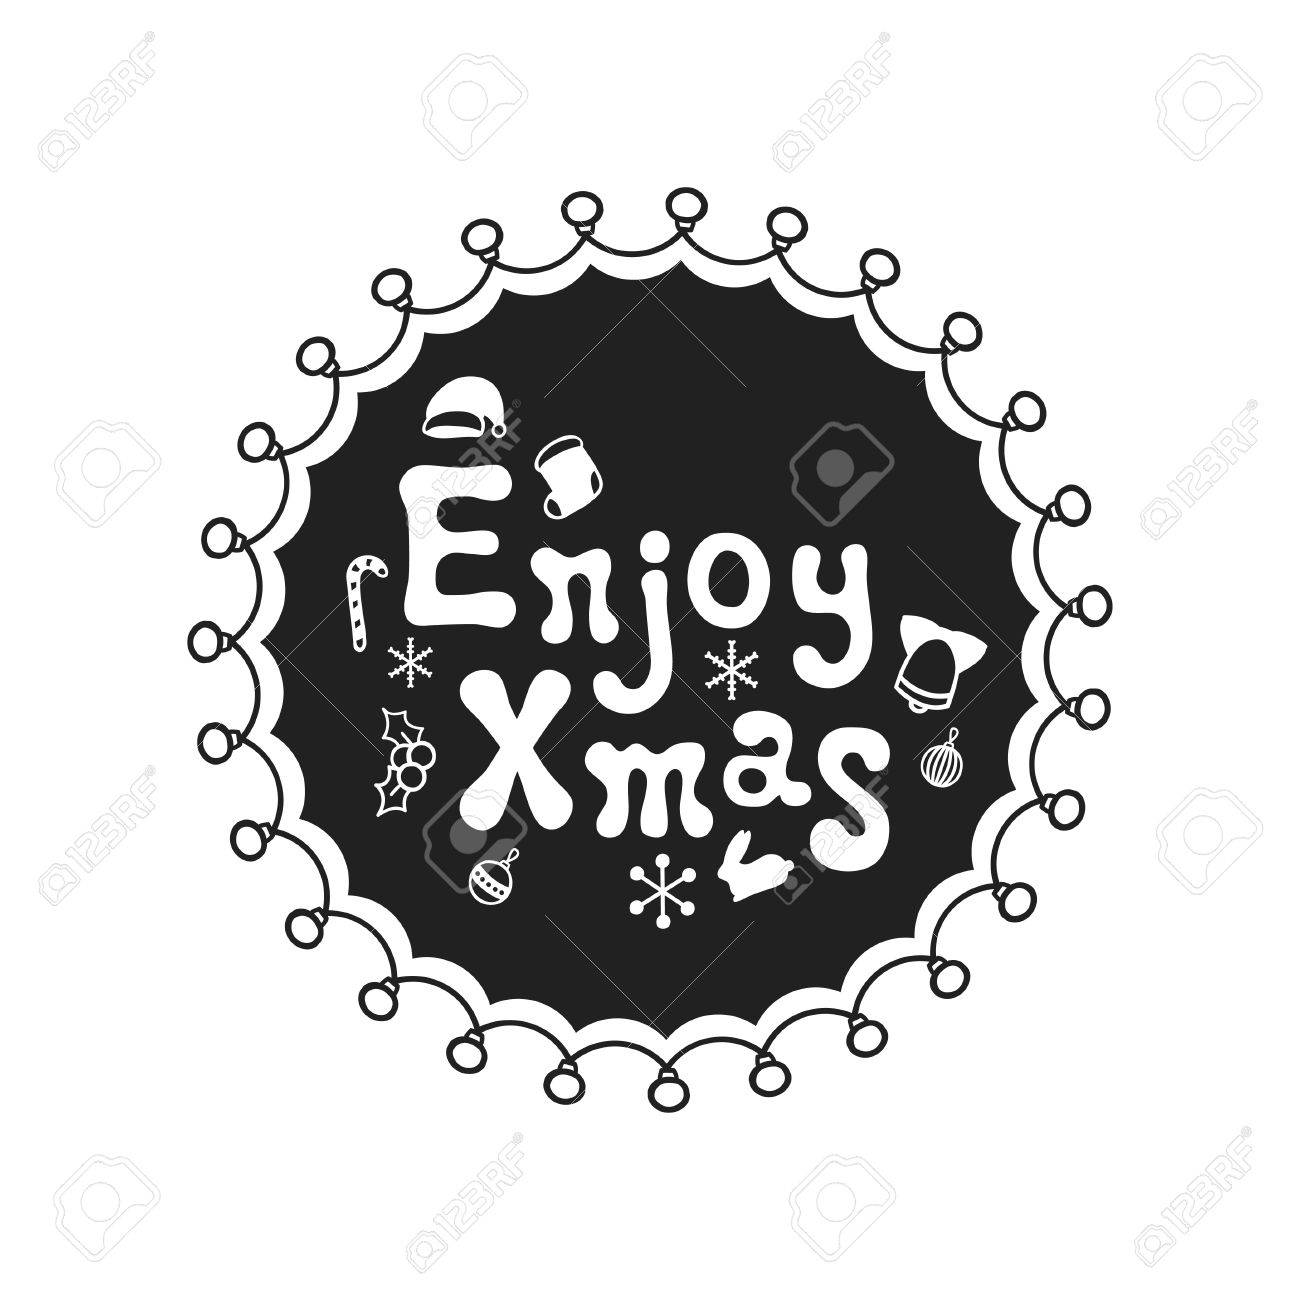 Enjoy xmas calligraphy phrase handwritten brush seasons calligraphy phrase handwritten brush seasons lettering xmas phrase hand drawn kristyandbryce Choice Image